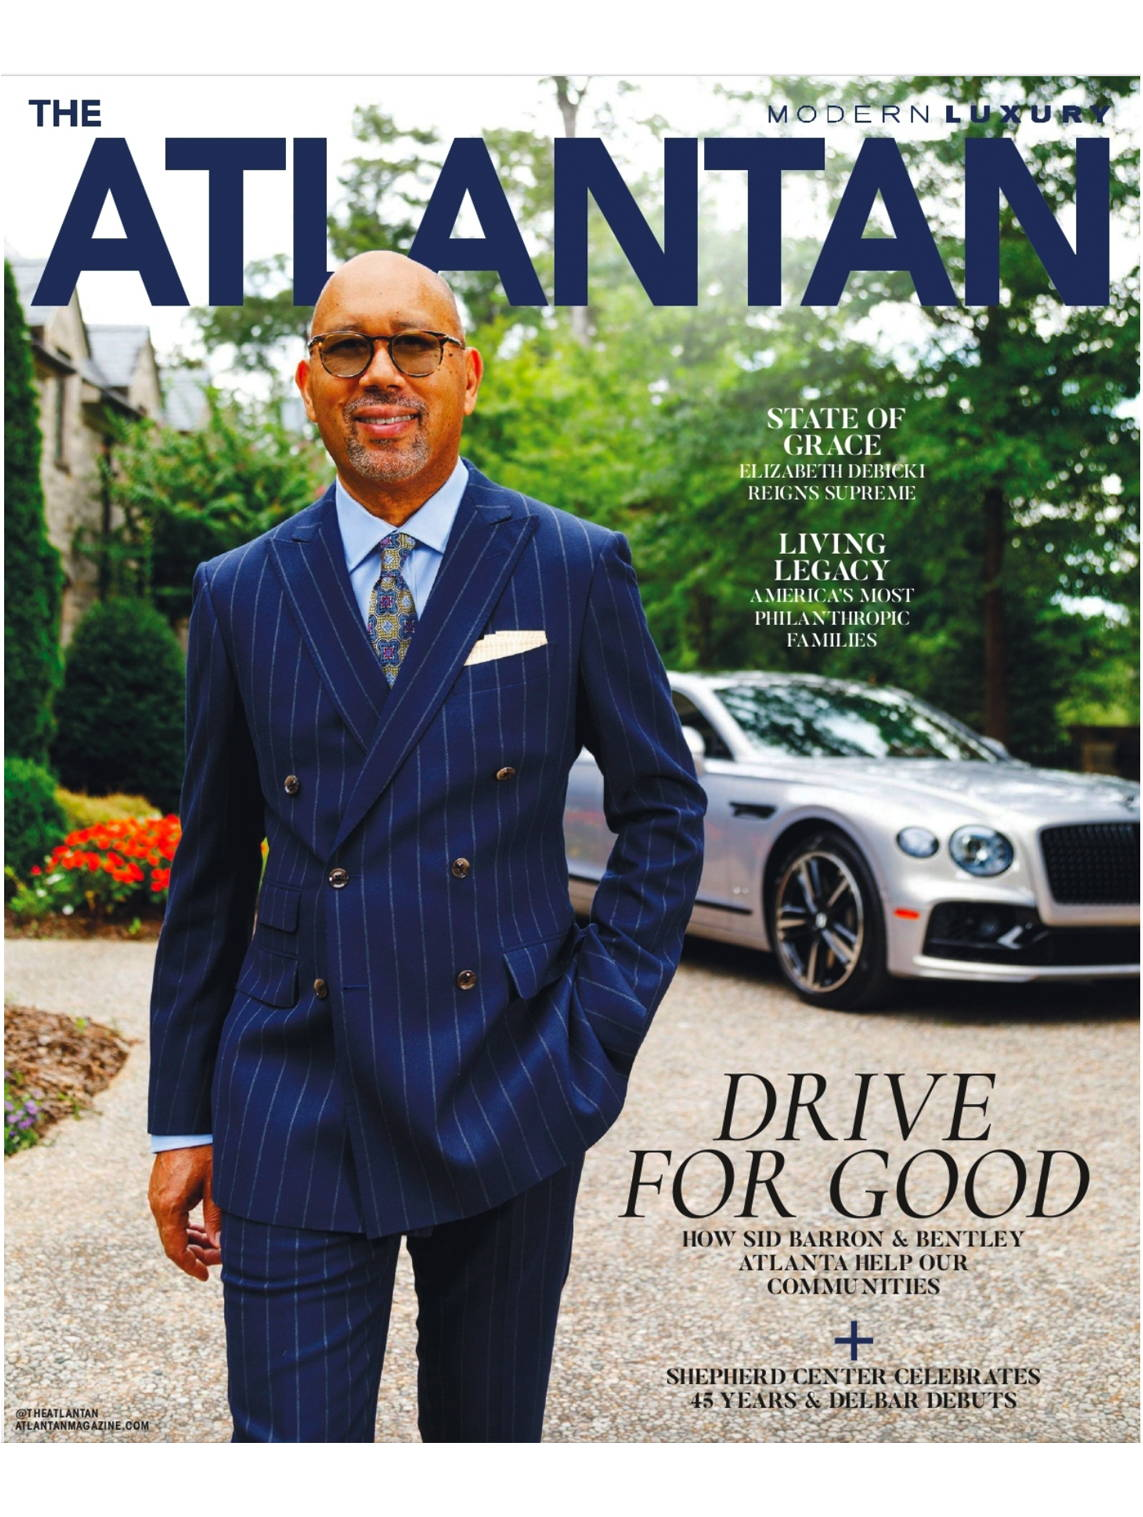 Modern Luxury The Atlantan November 2020 Issue Featuring Adelina Social Goods